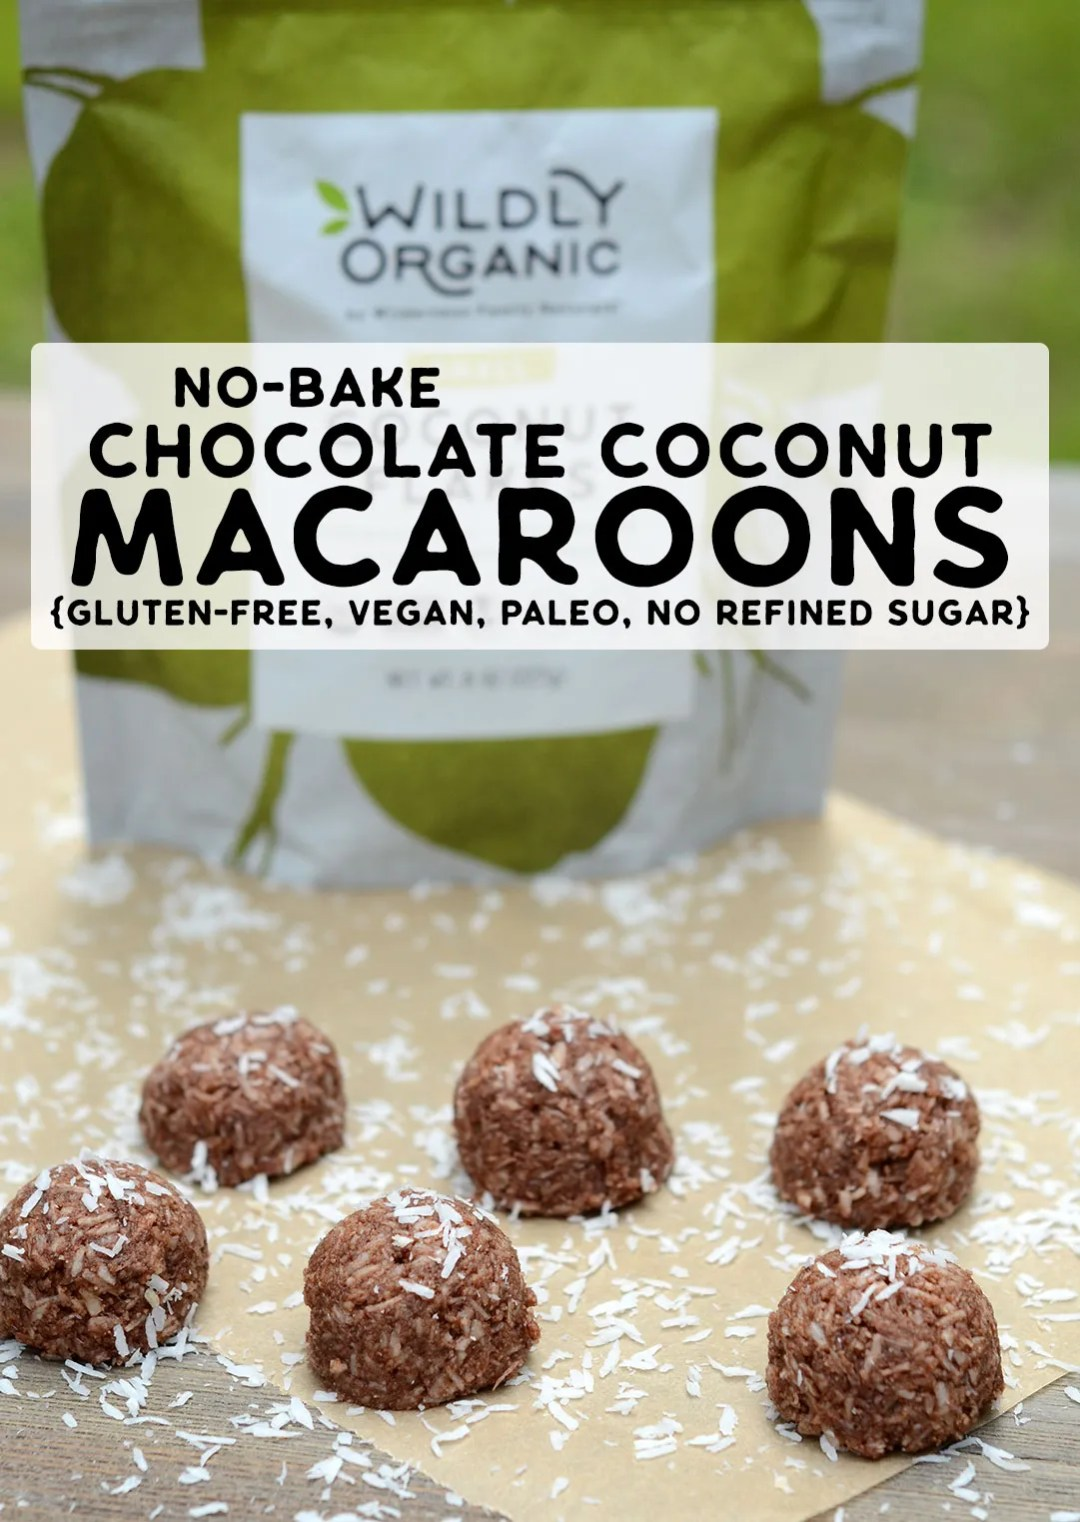 Photo of No-Bake Chocolate Coconut Macaroons {gluten-free, vegan, paleo, no refined sugar} | With just 6 healthy ingredients, these no-bake chocolate coconut macaroons will be a staple in your house this summer. They're so easy to make, too!